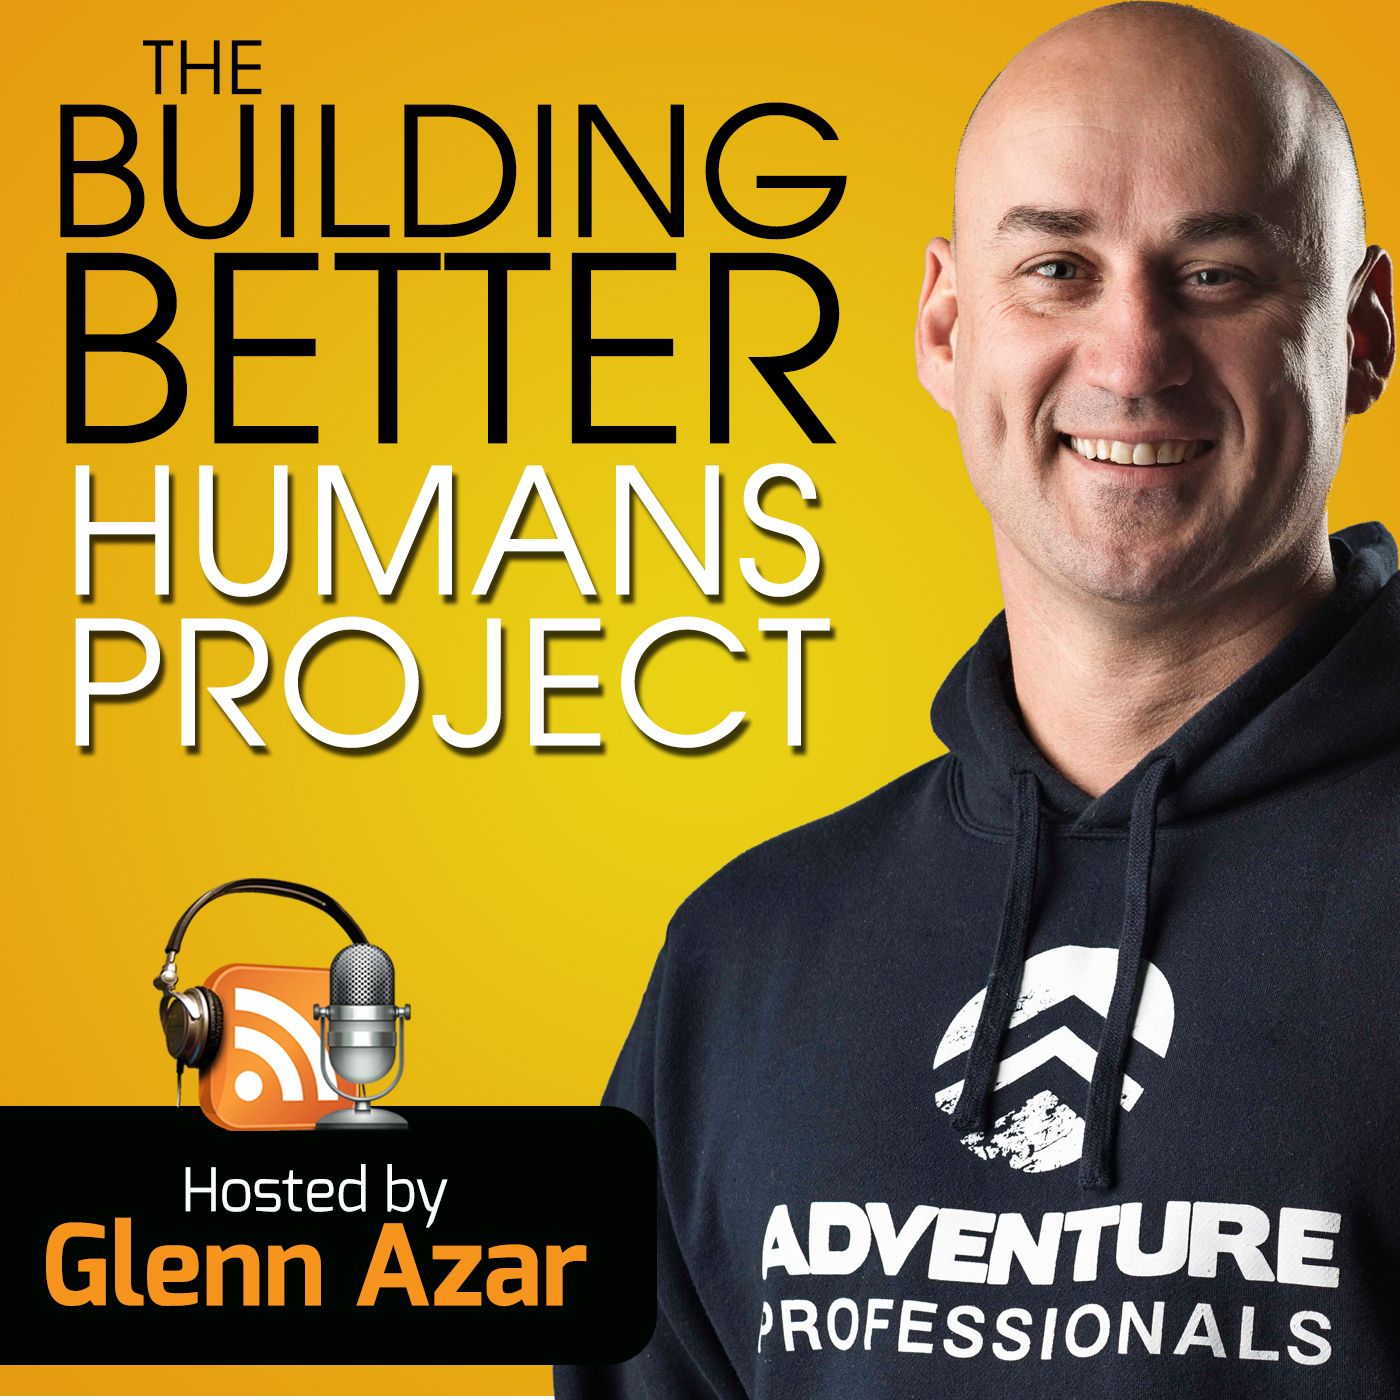 Building Better Humans Project